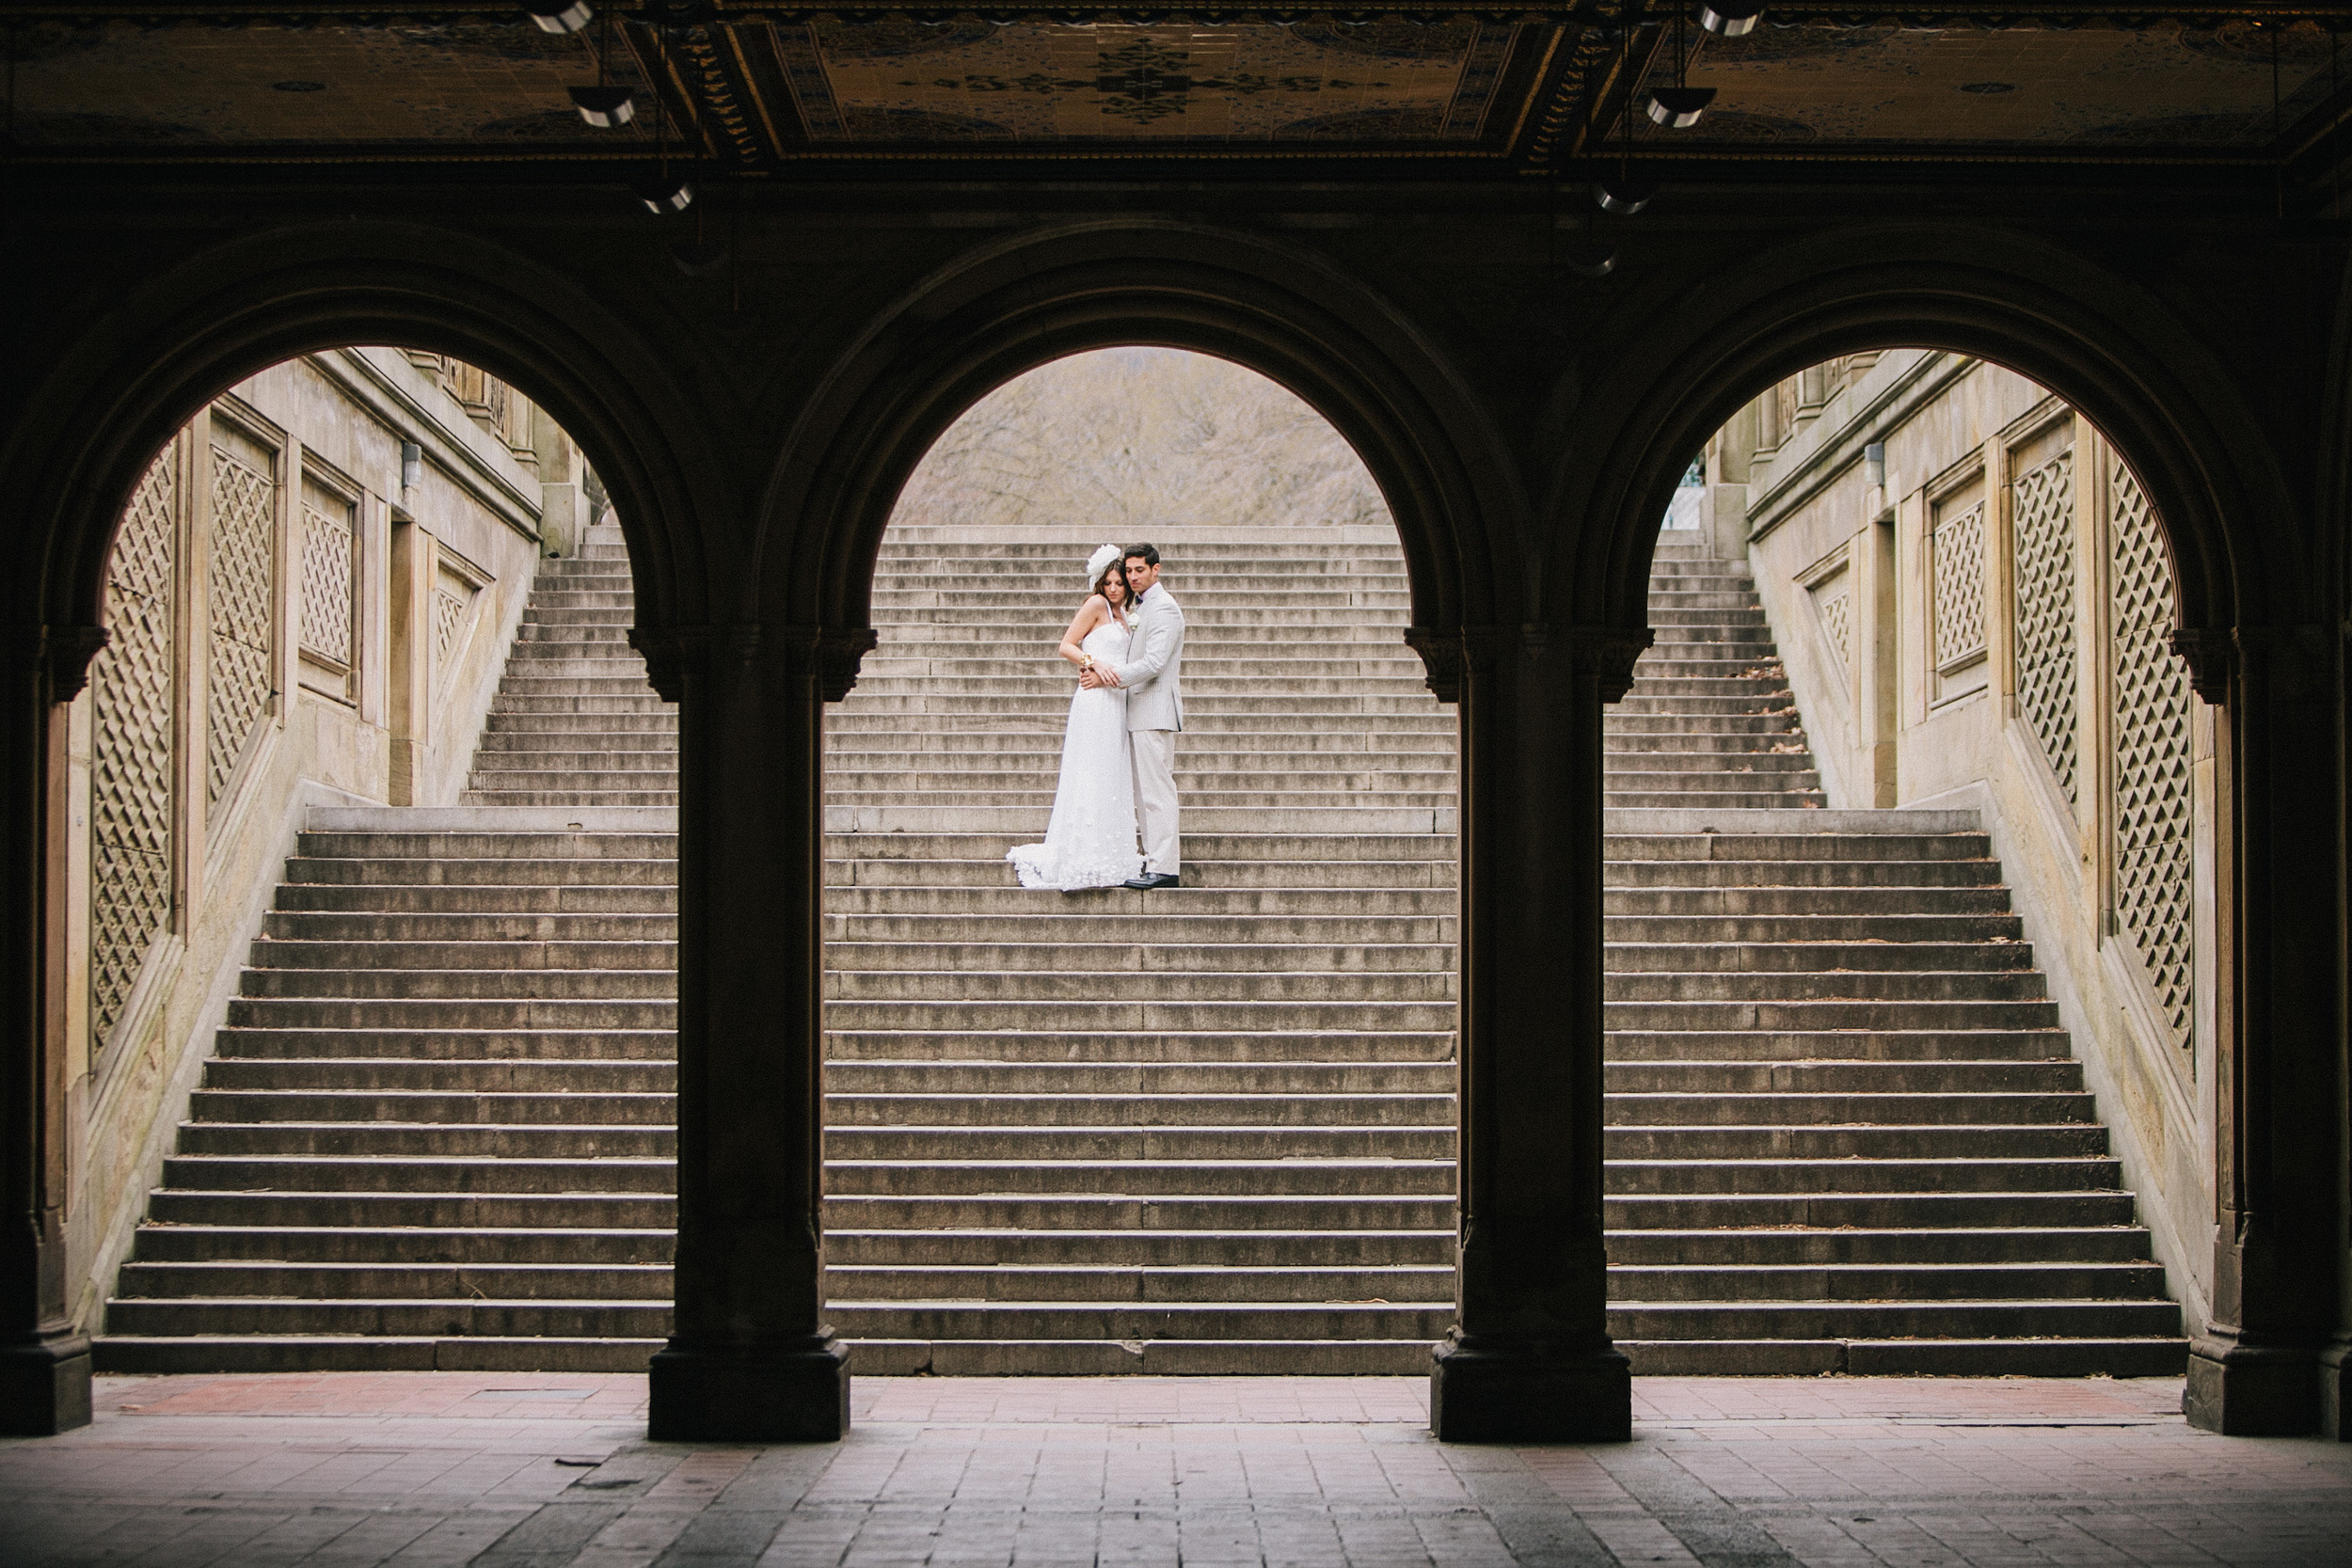 michael-rousseau-photography-new-york-city-wedding-central-park018.jpg